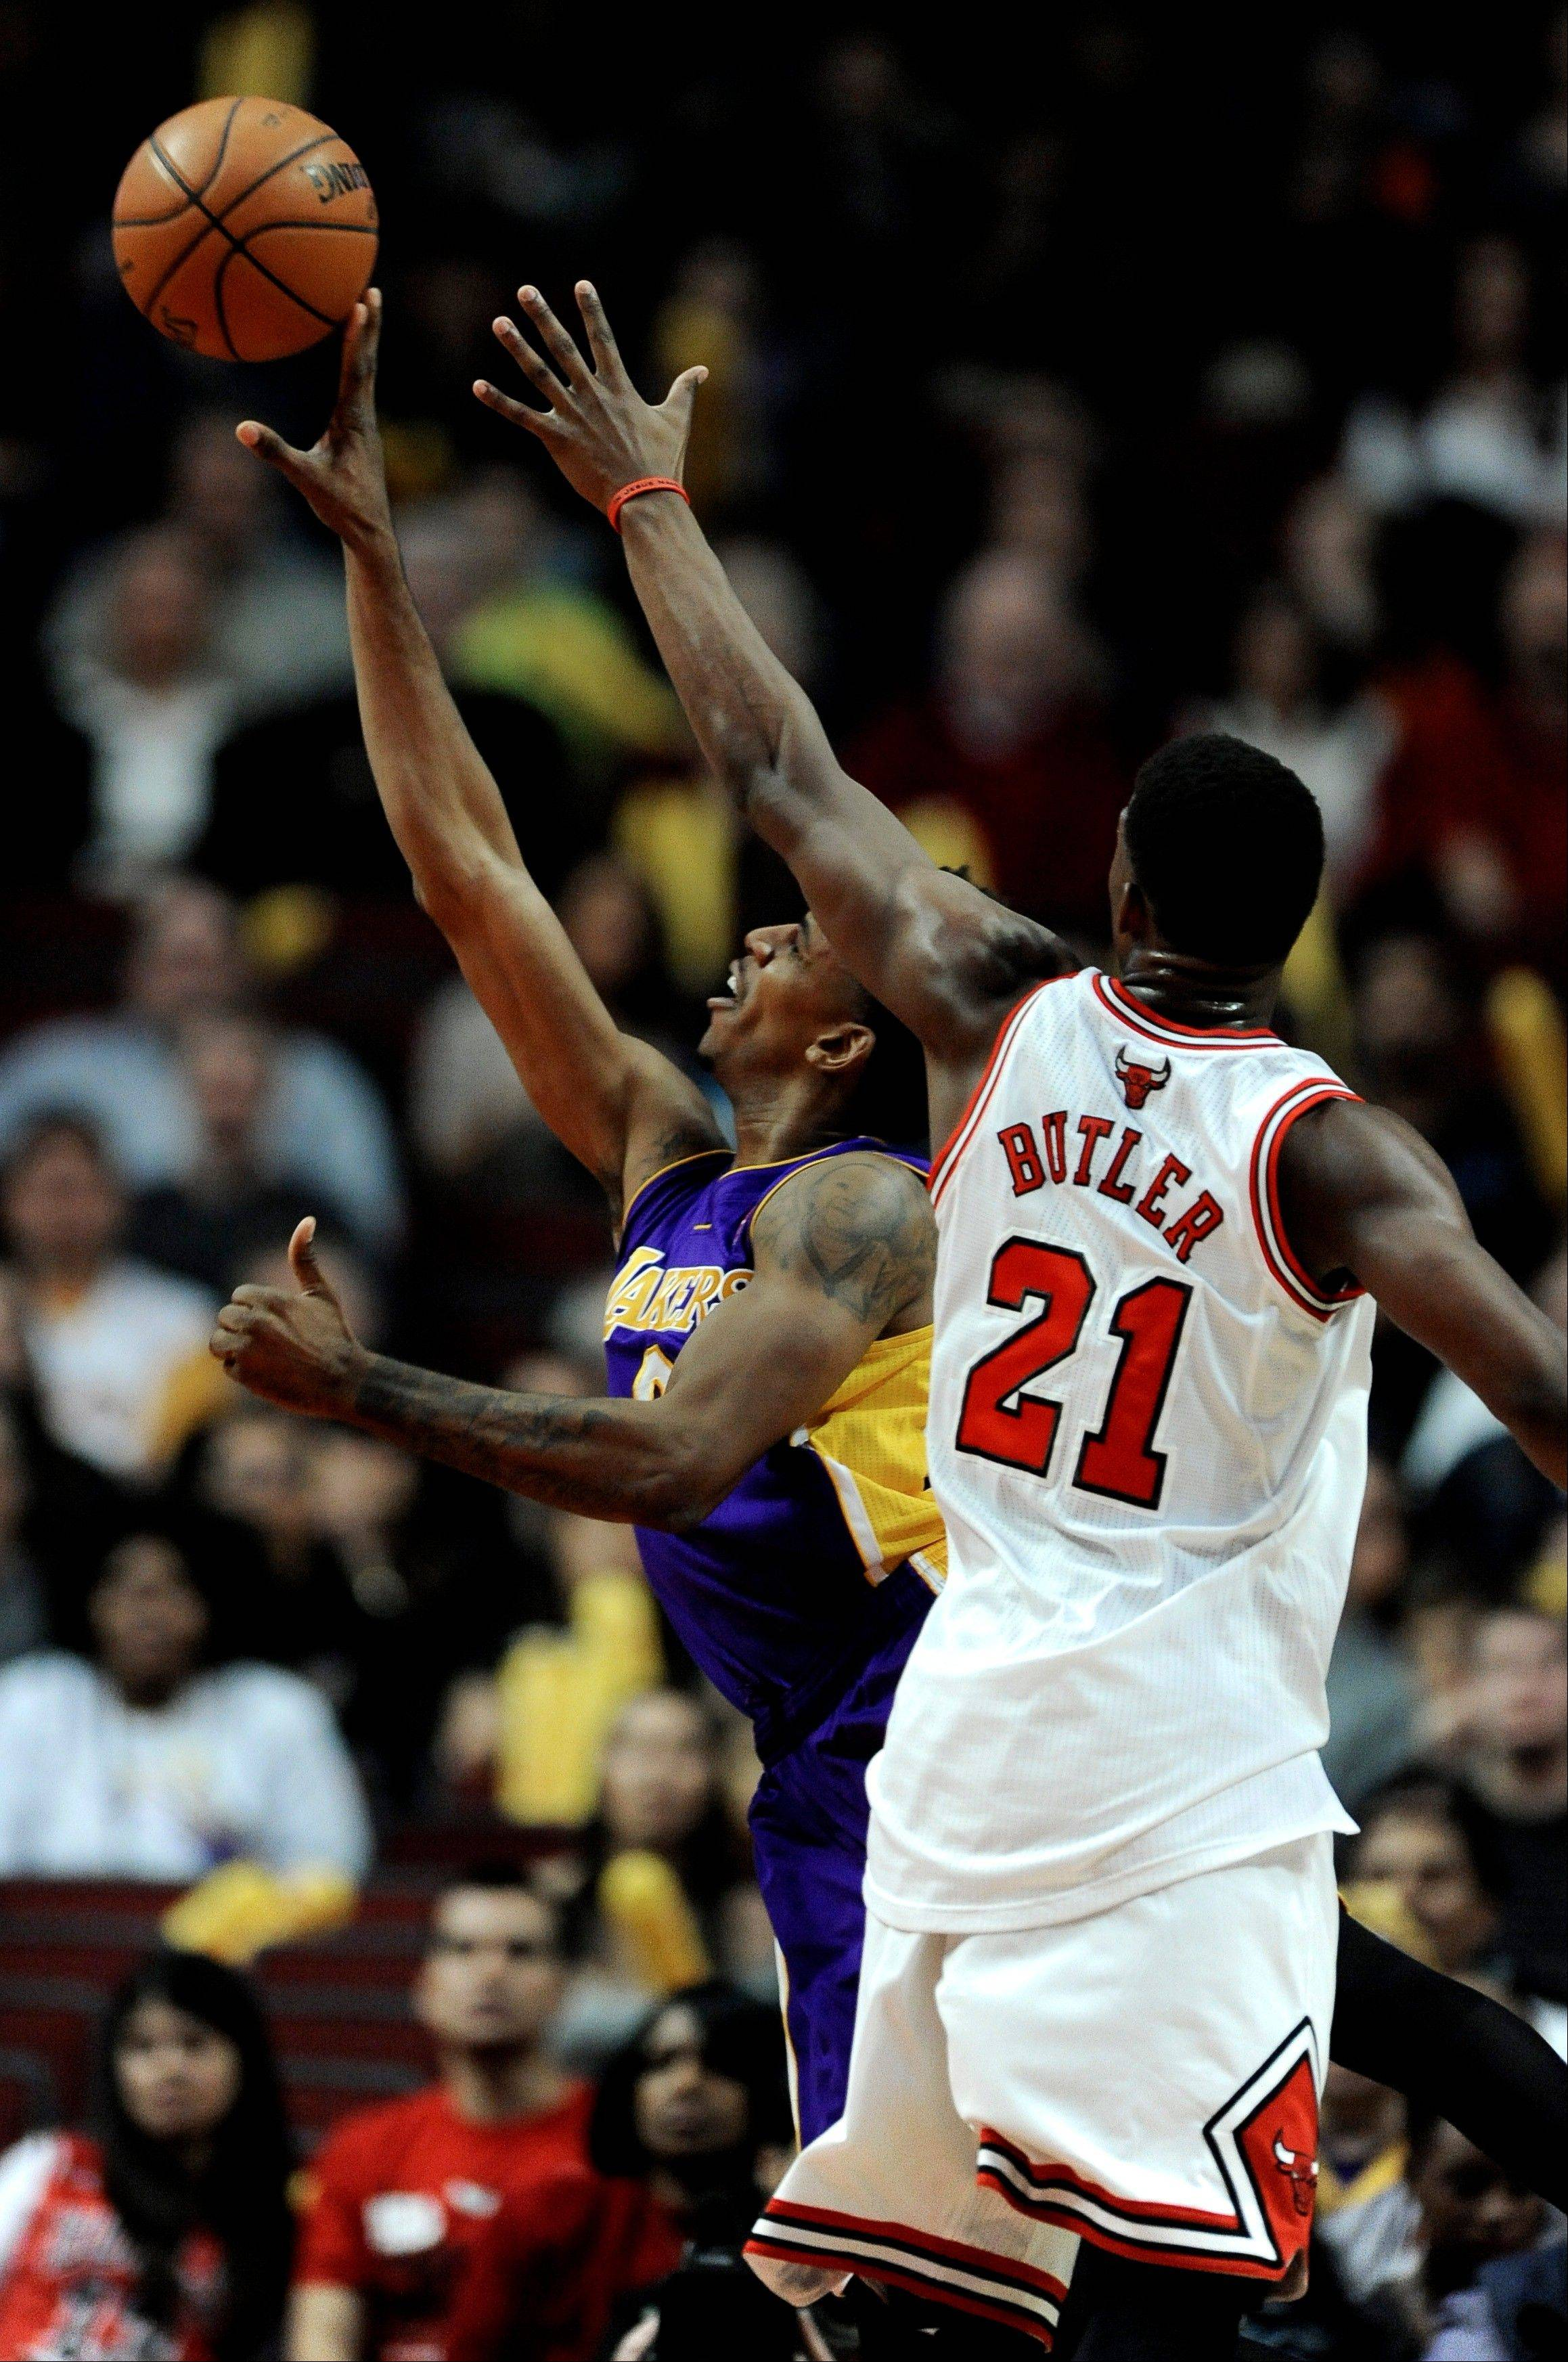 The Los Angeles Lakers' Nick Young goes up for a shot against the Bulls' Jimmy Butler during the first quarter of an NBA basketball game in Chicago, Monday, Jan., 20, 2014.